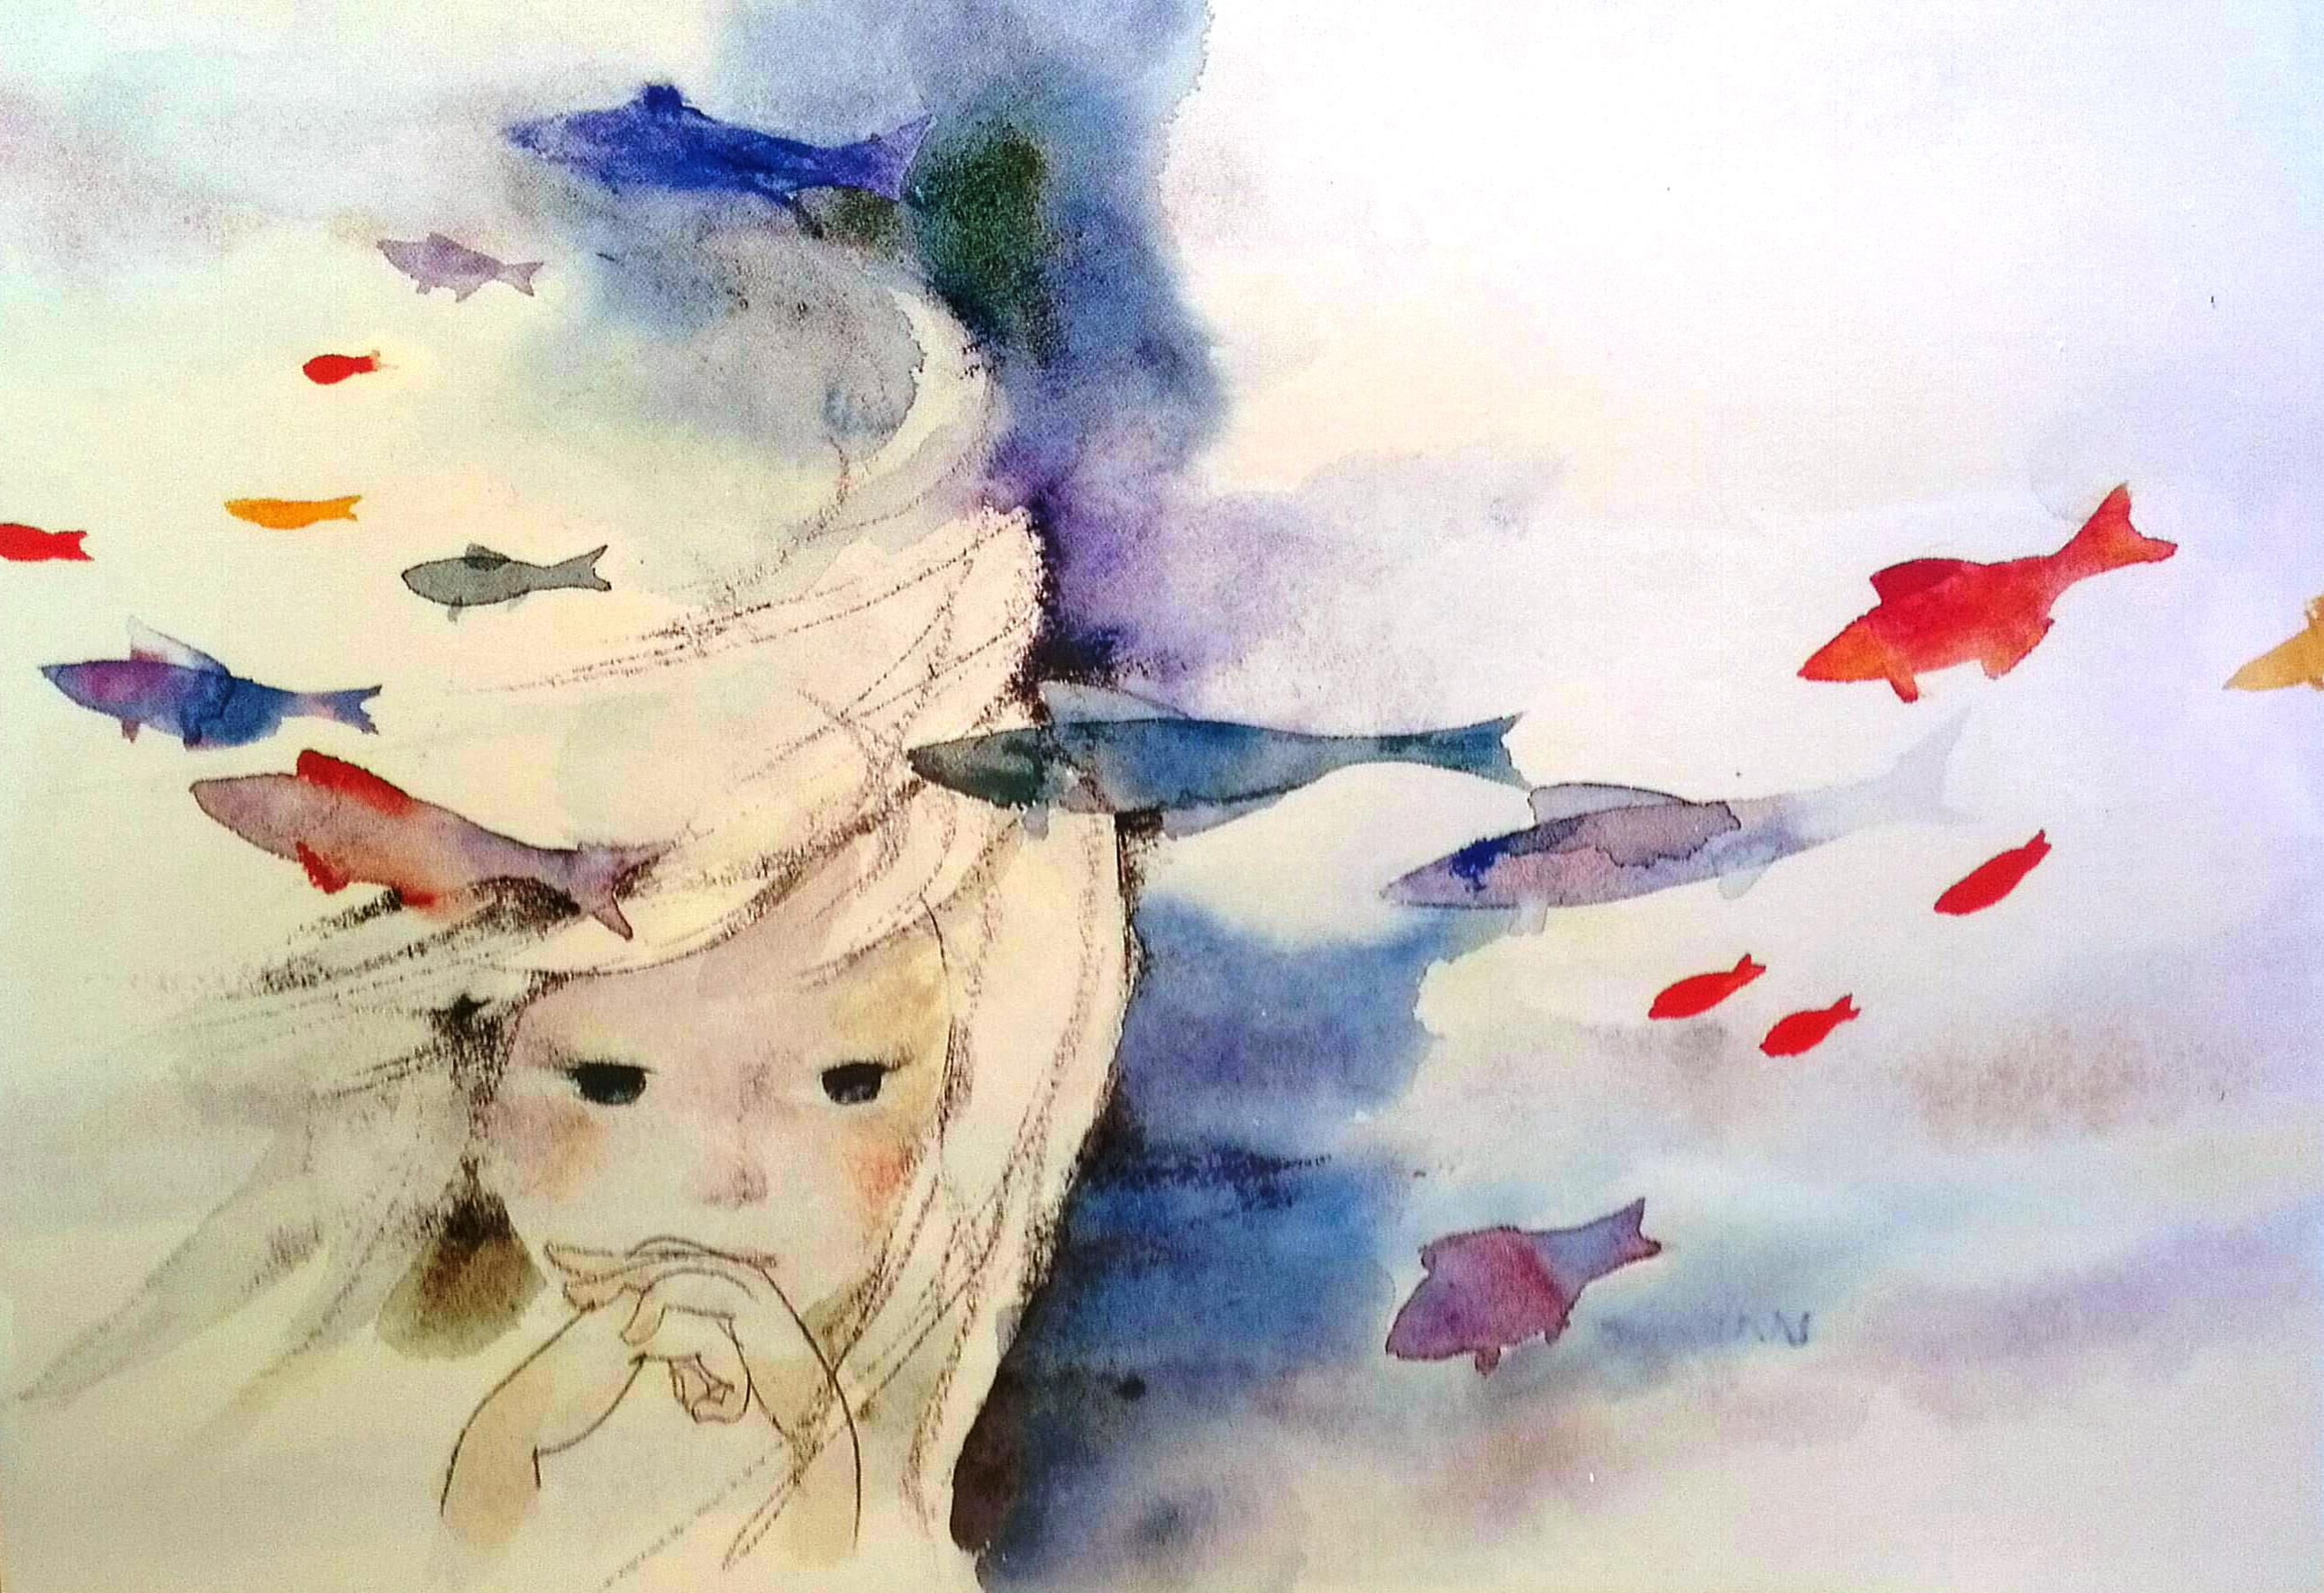 Aspired Chihiro Iwasaki In 2020 With Images Watercolor